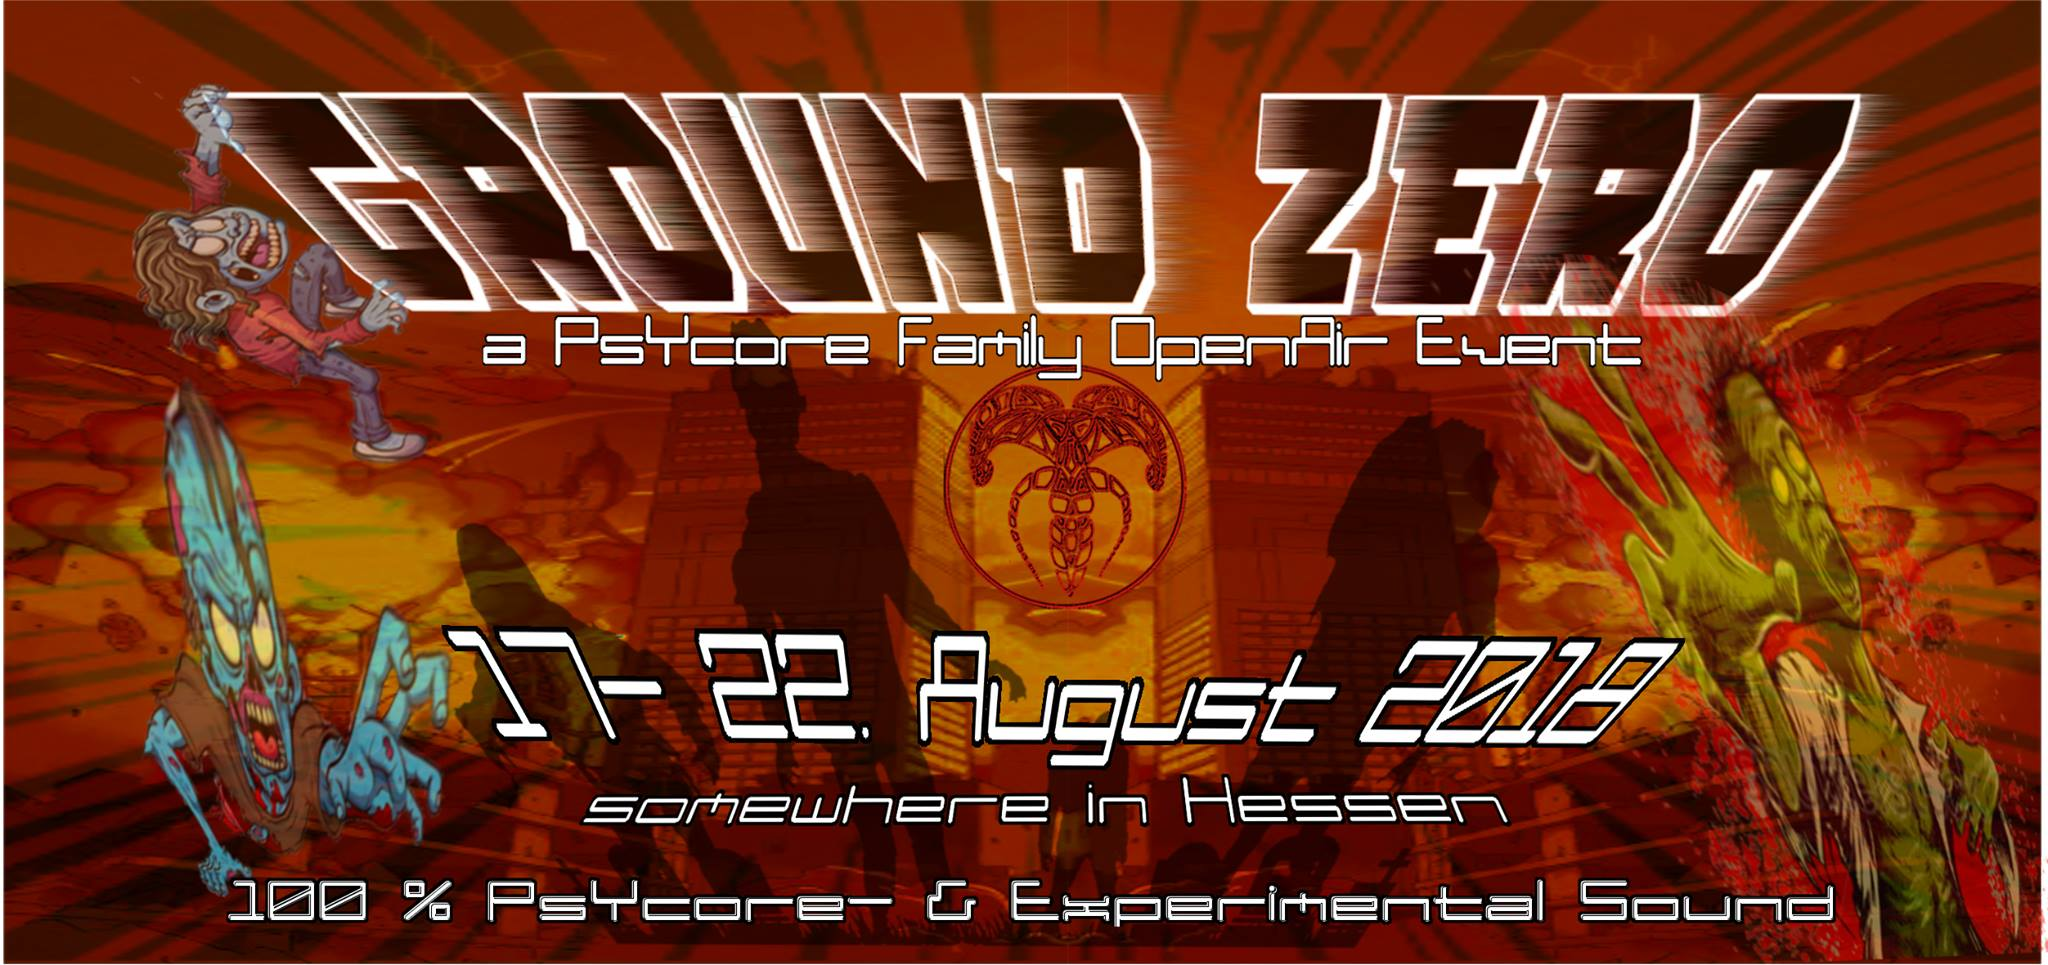 17-22.08.2018, PsyCore Family presents GROUND ZERO @ Hessen (DE)